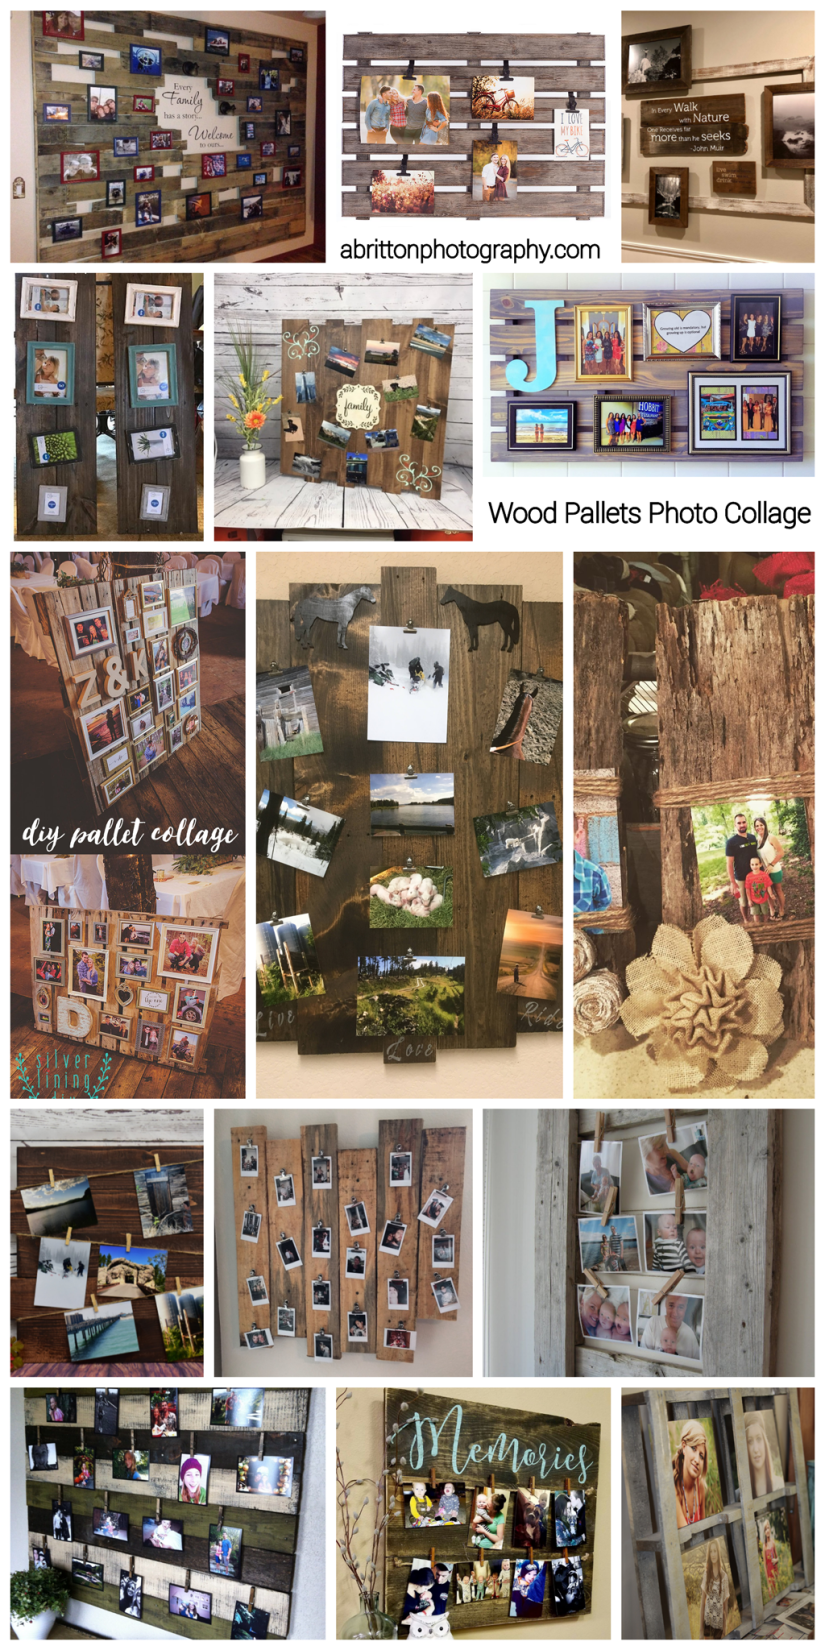 wood pallets photo collage ideas